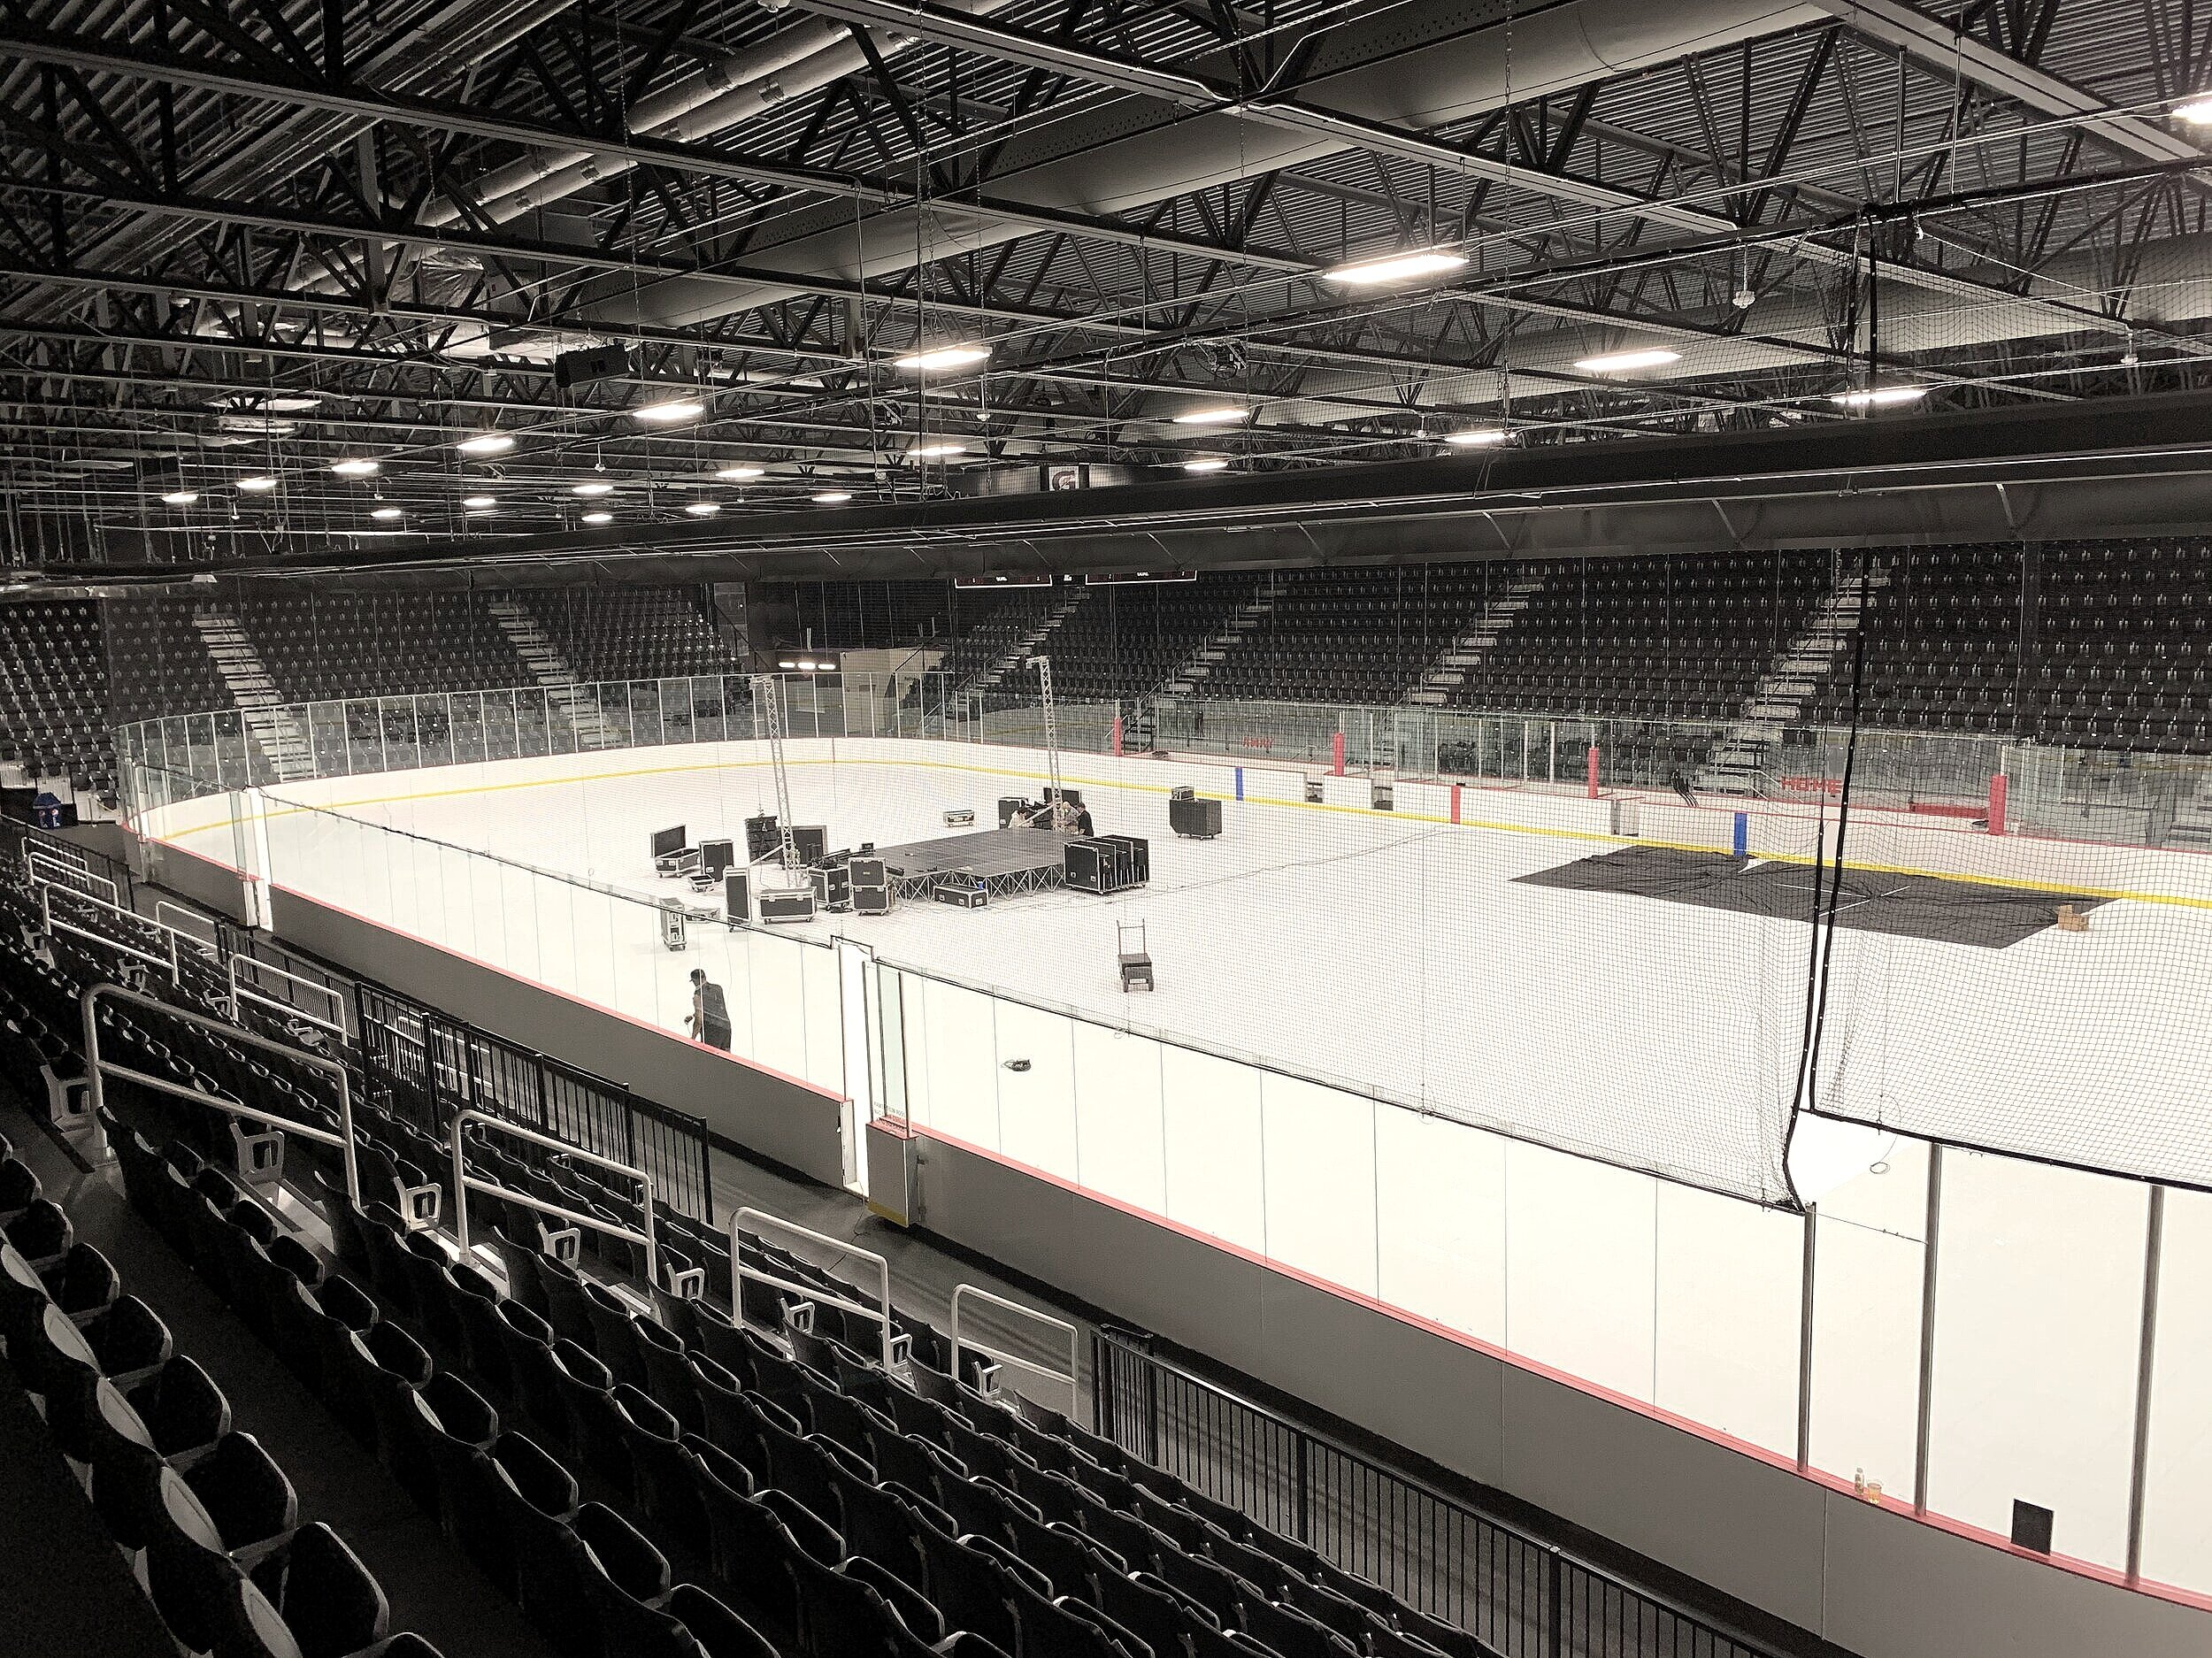 Install stages, trade show booths and other materials on top of the arena flooring.